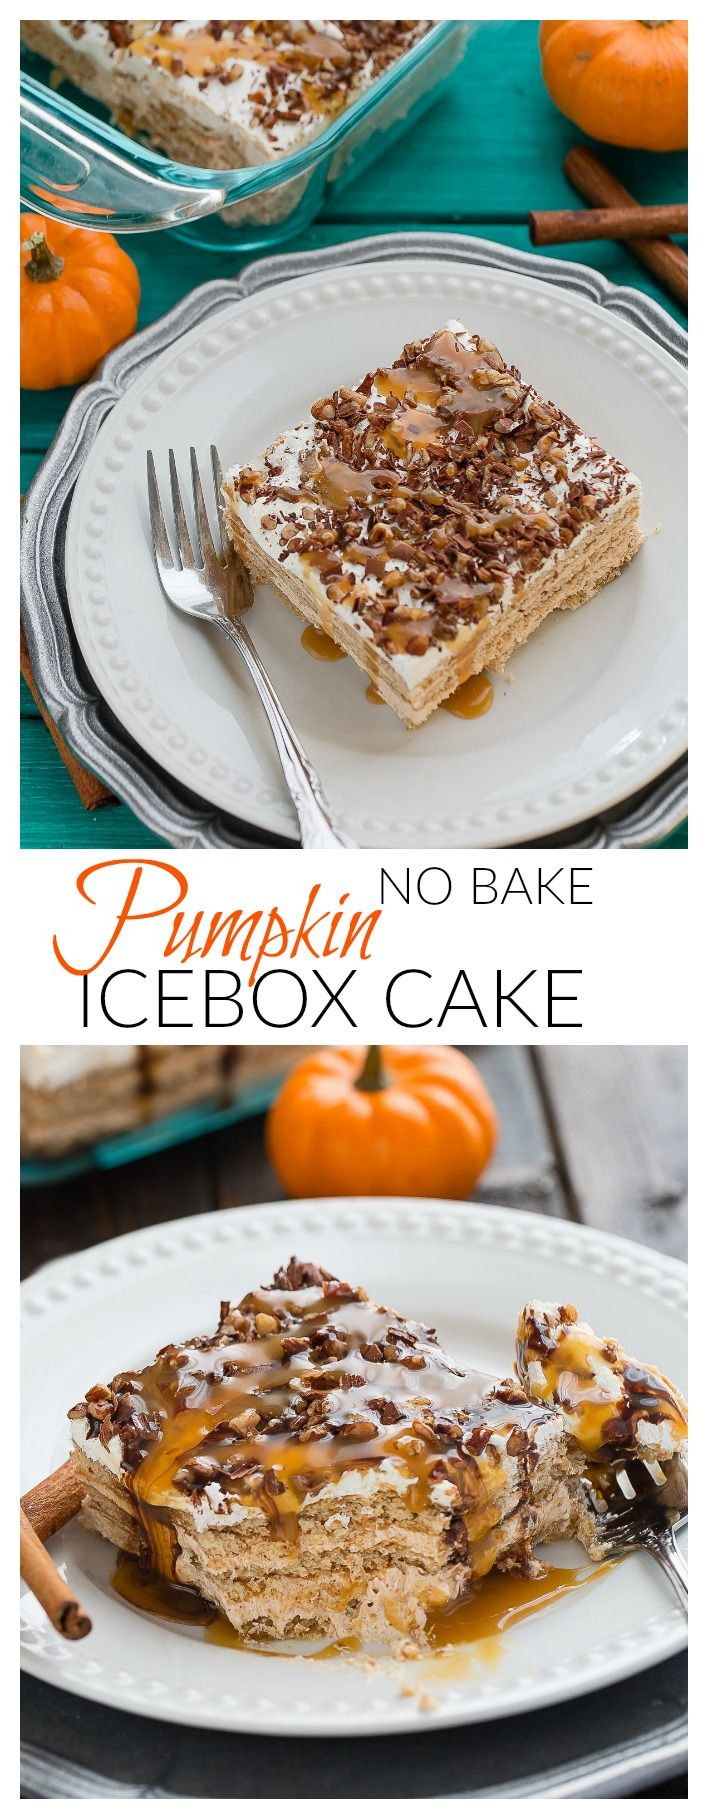 Fall Flavors For Desserts  Pumpkin Ice Box Cake is the perfect easy no bake fall